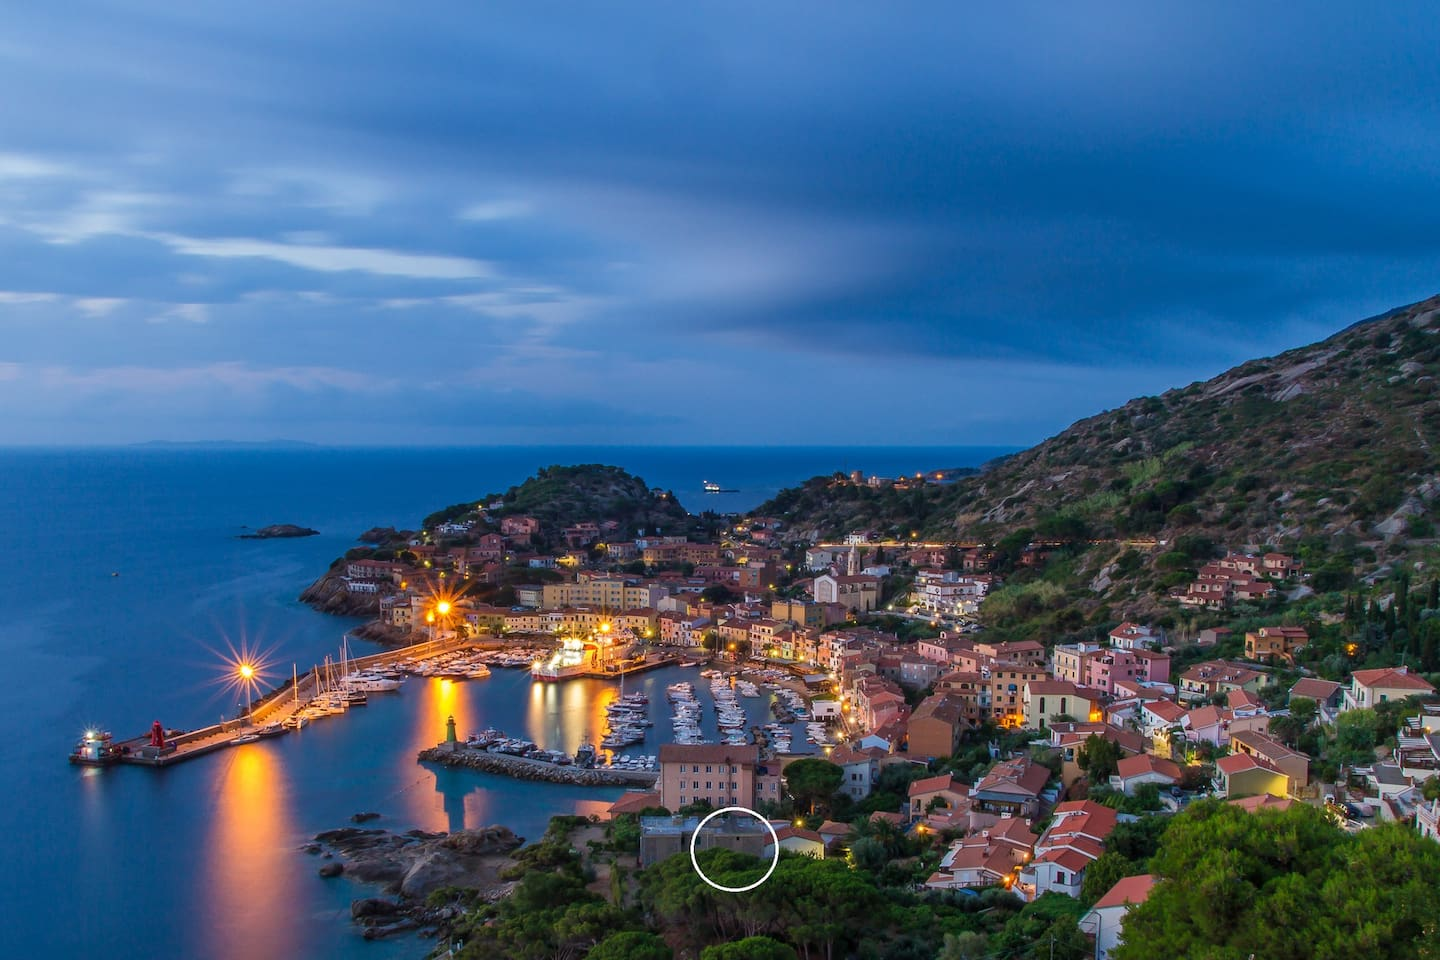 Welcome to the island of Giglio